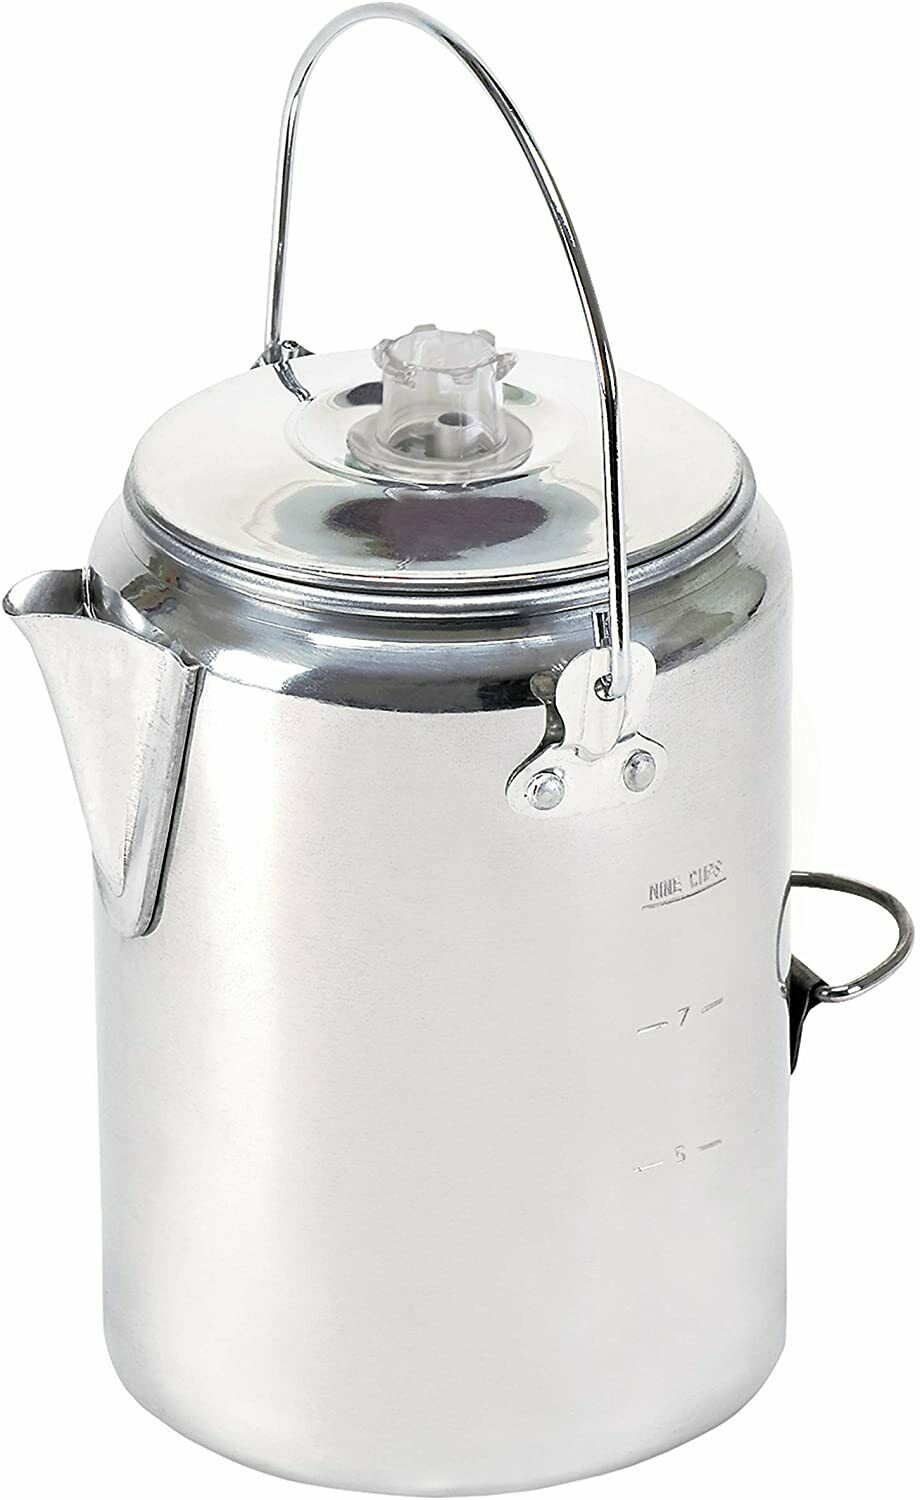 Stovetop Percolator Coffee Pot Camping Heavy Duty Aluminum 9